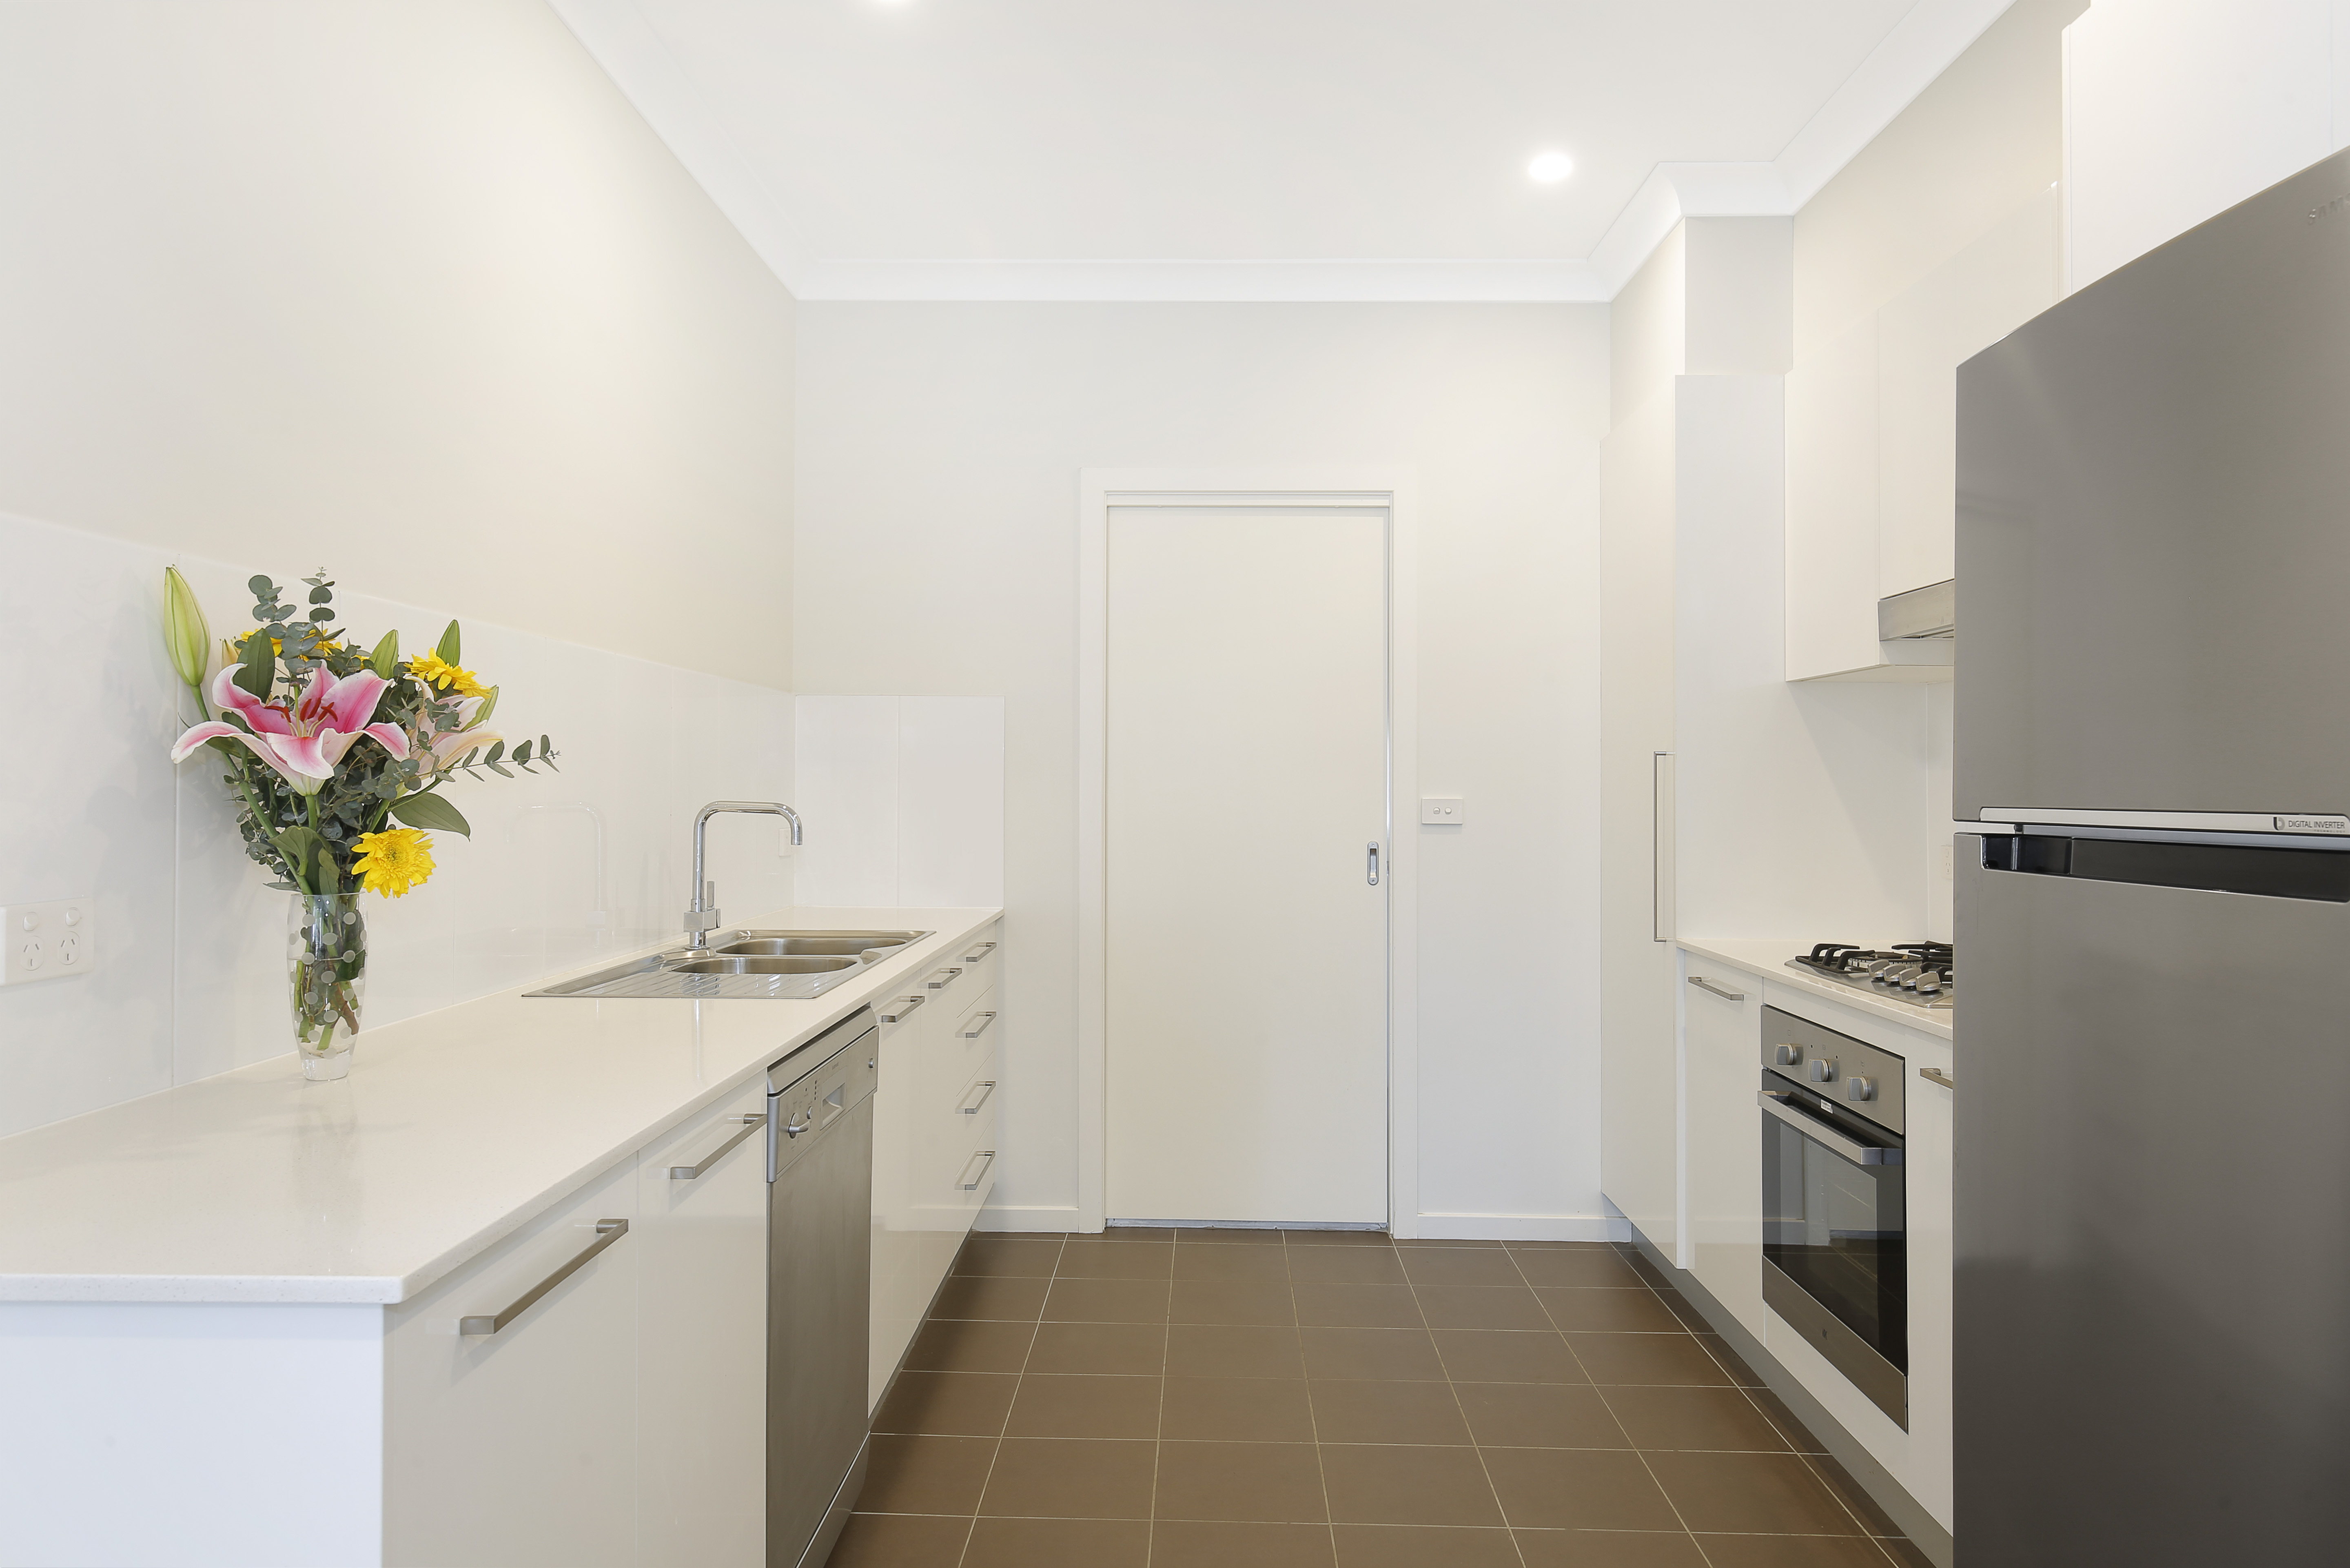 Due to the current situation COVID-19, We are conducting PRIVATE INSPECTIONS ONLY for *** Qualified Tenants ***